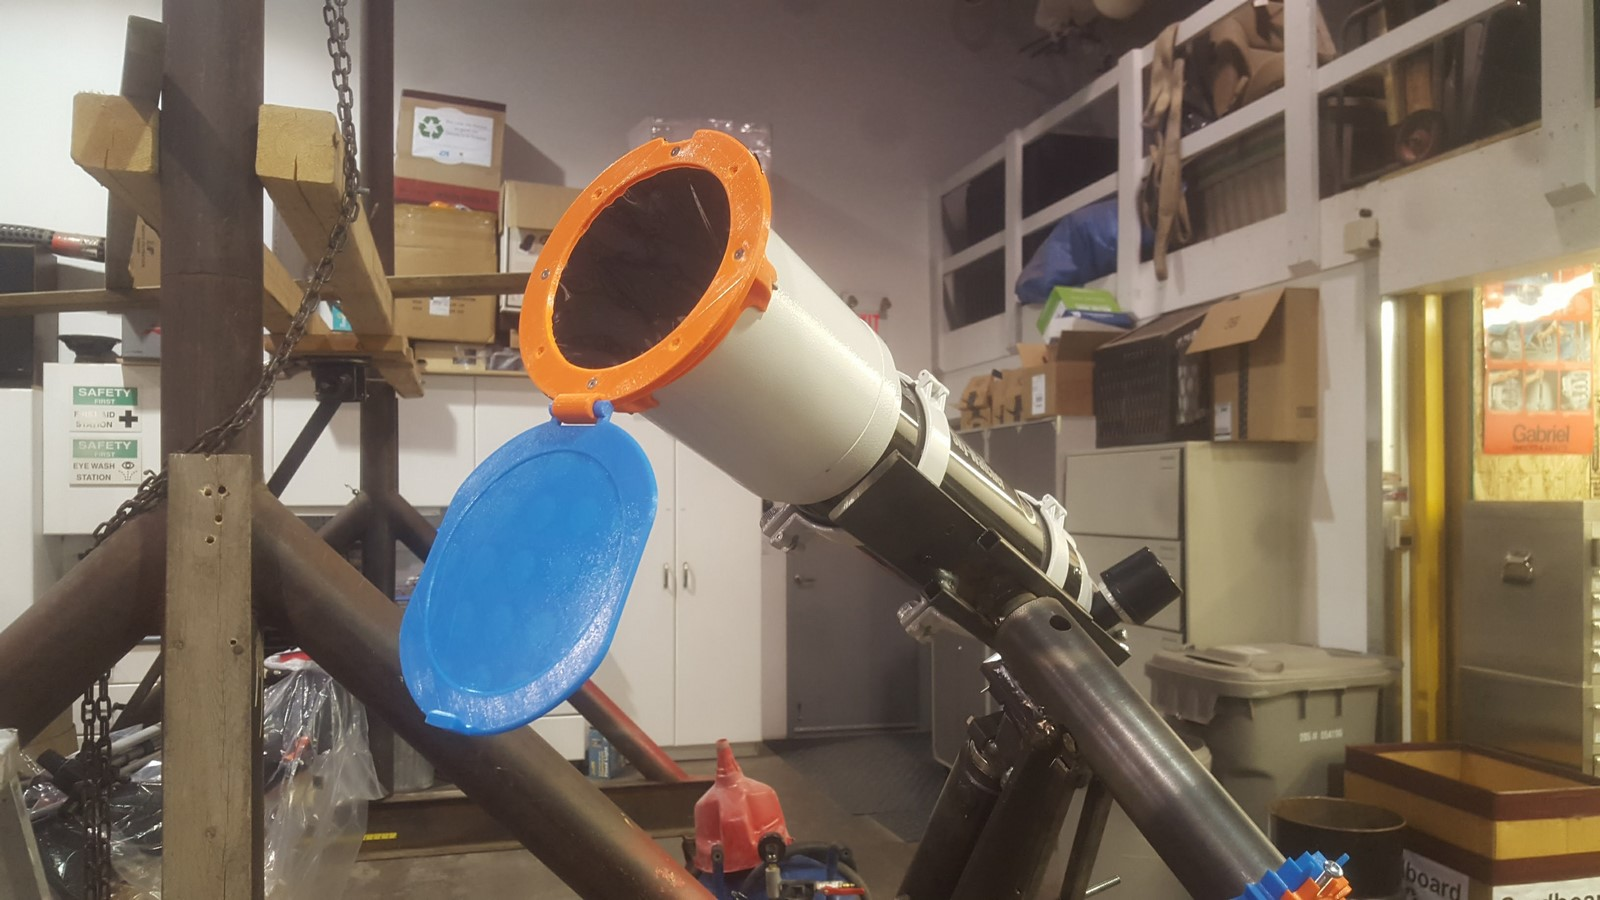 3D Printed Solar Filter for Telescope